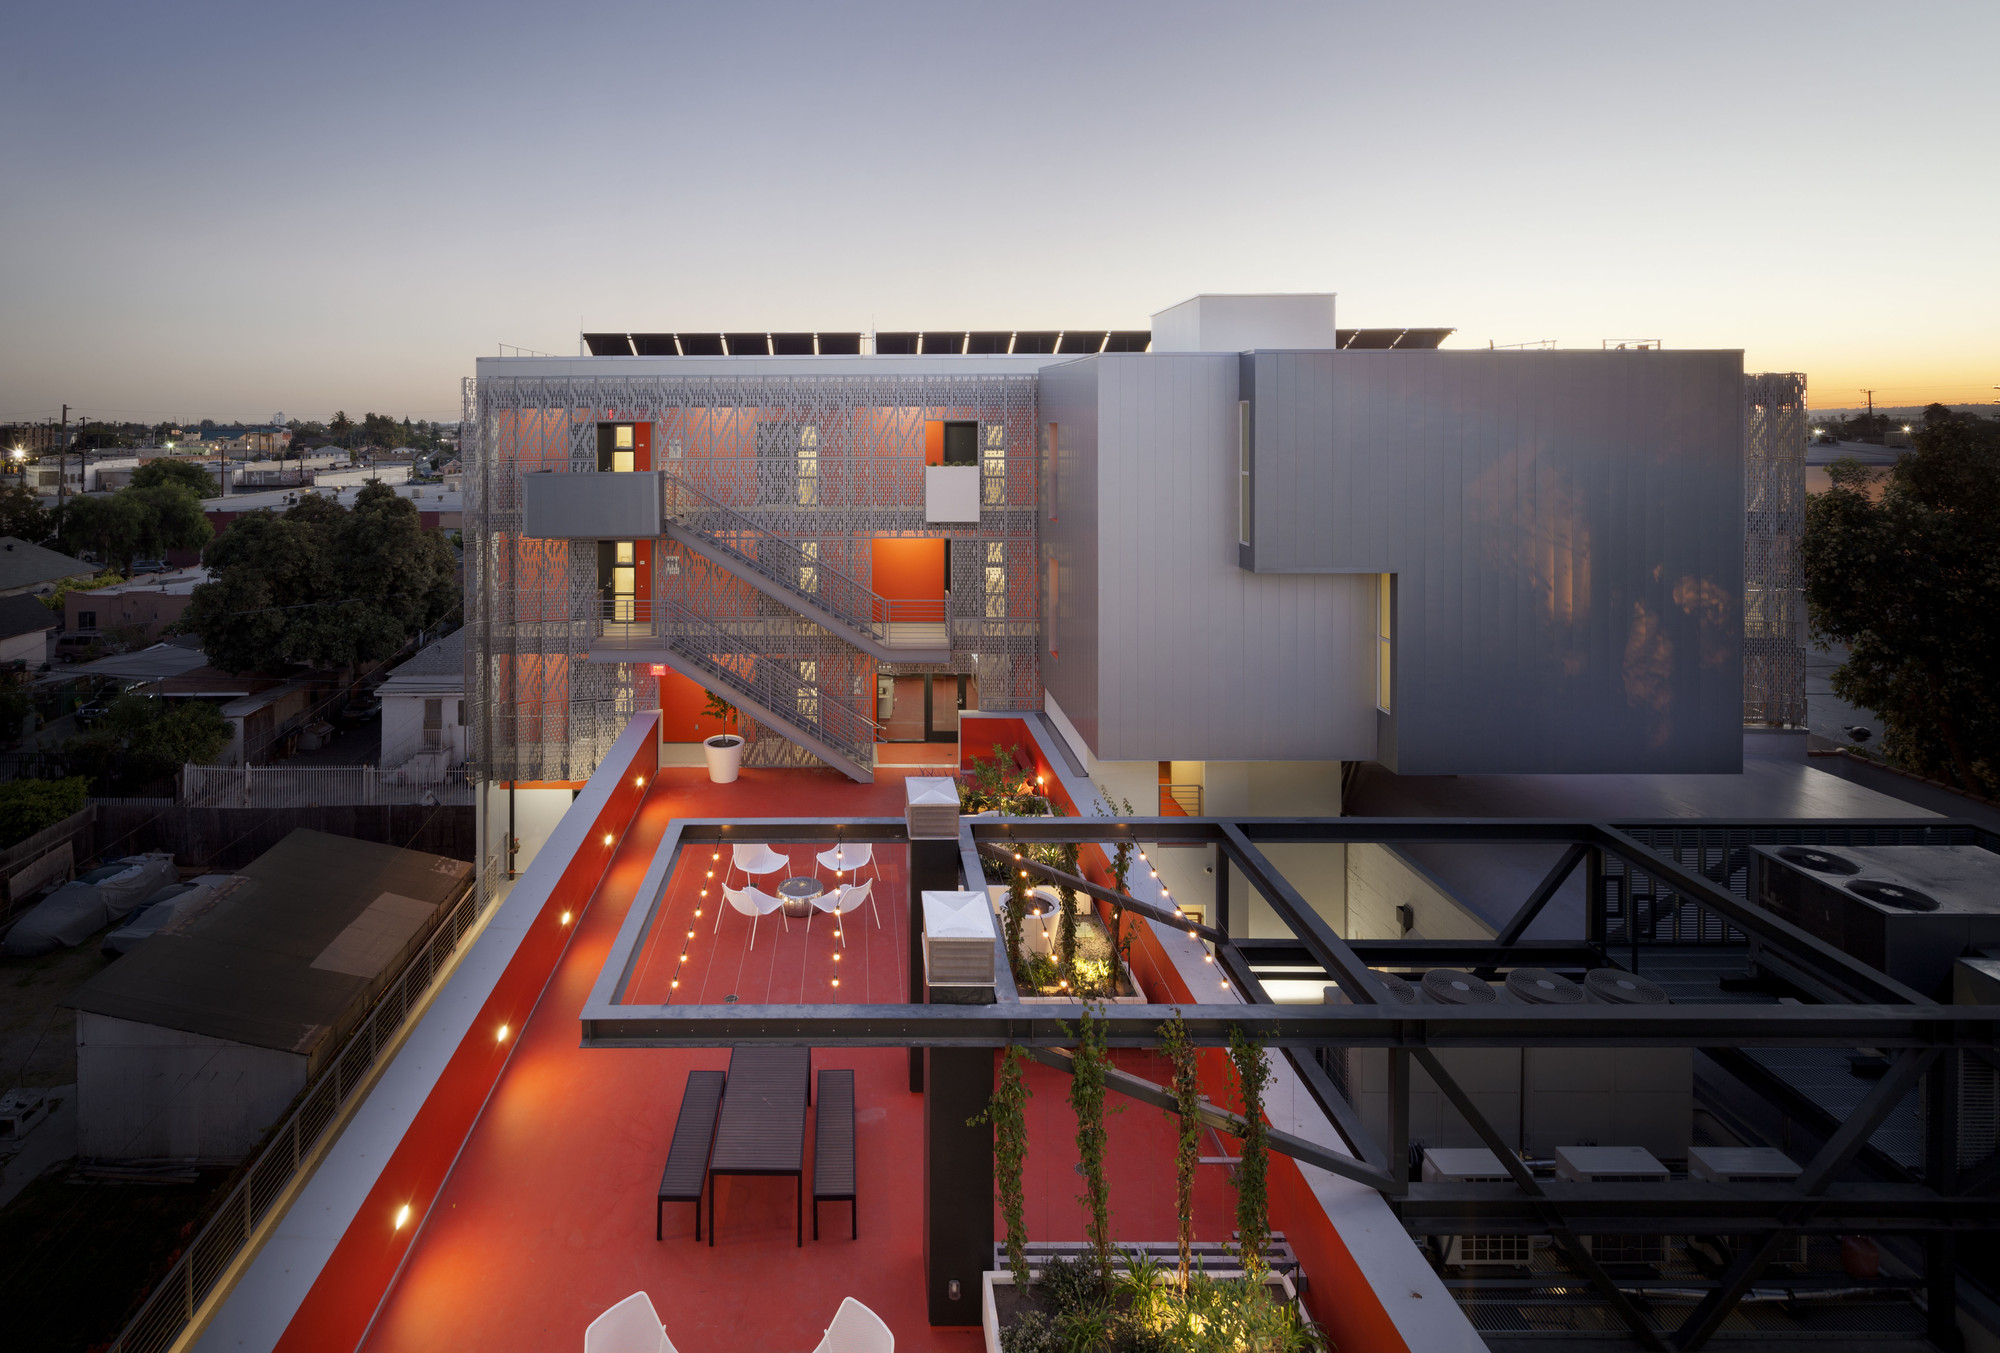 Housing winner: 28thStreet Apartments, USA by Koning Eizenberg Architecture, Inc